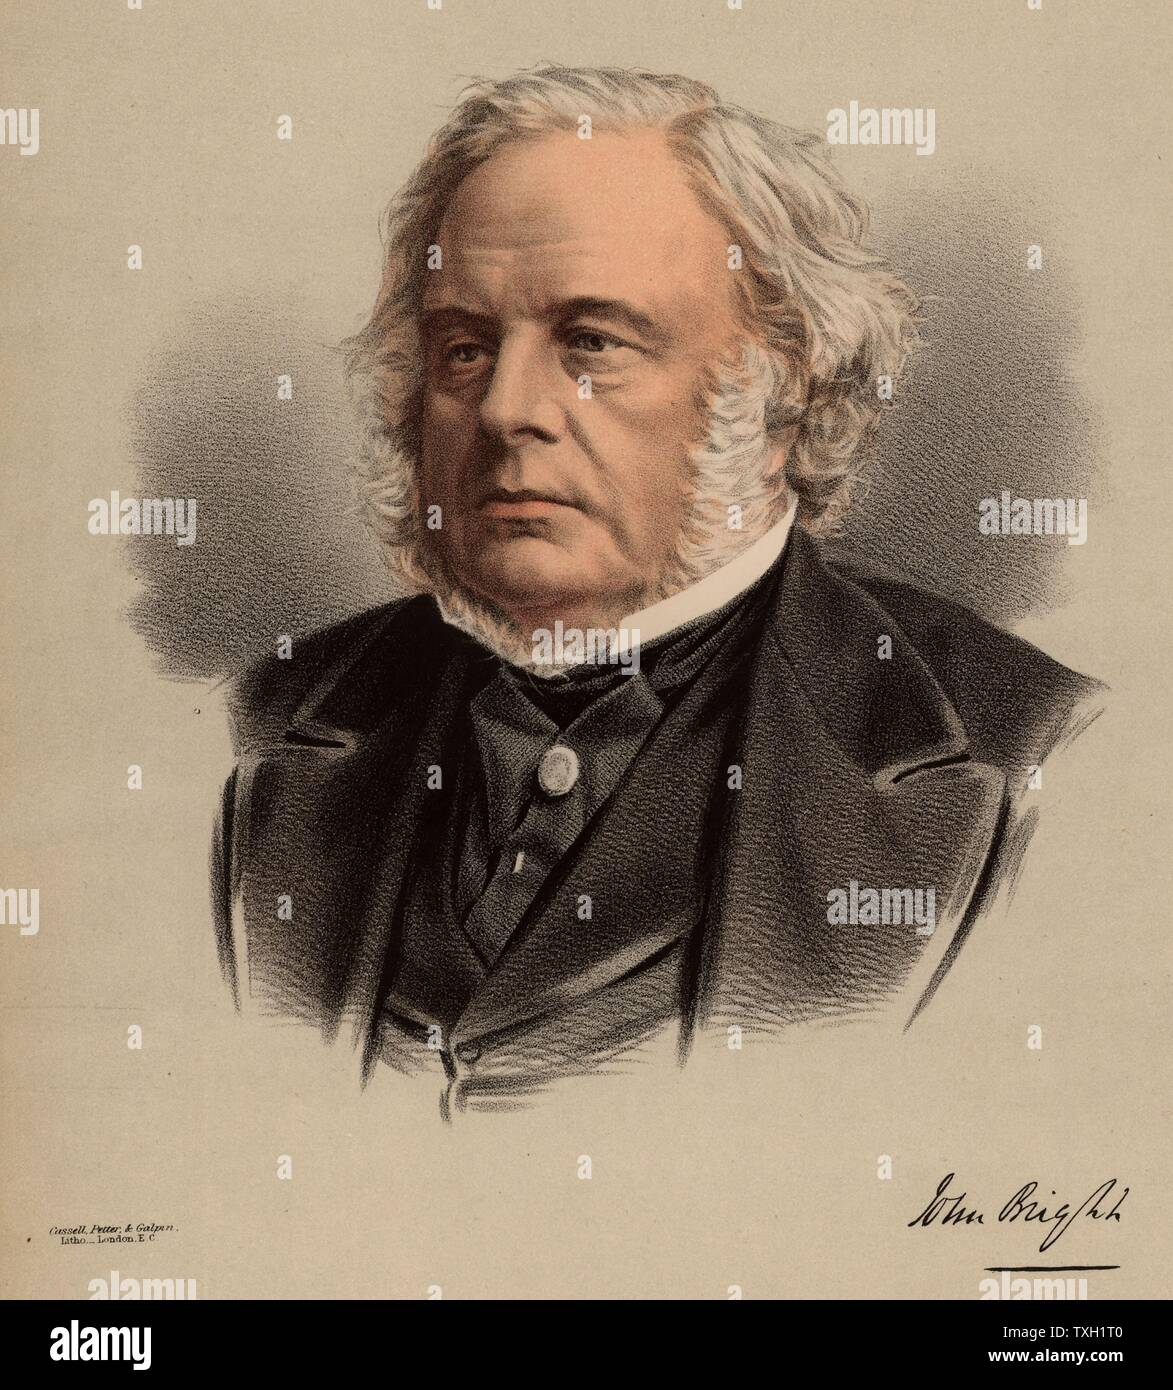 "John Bright (1811-1889) British radical statesman, born in Rochdale, Lancashire. Anti Corn Law League. Reform Act 1867. From ""The National Portrait Gallery"" (London, c1880). Tinted lithograph. Stock Photo"